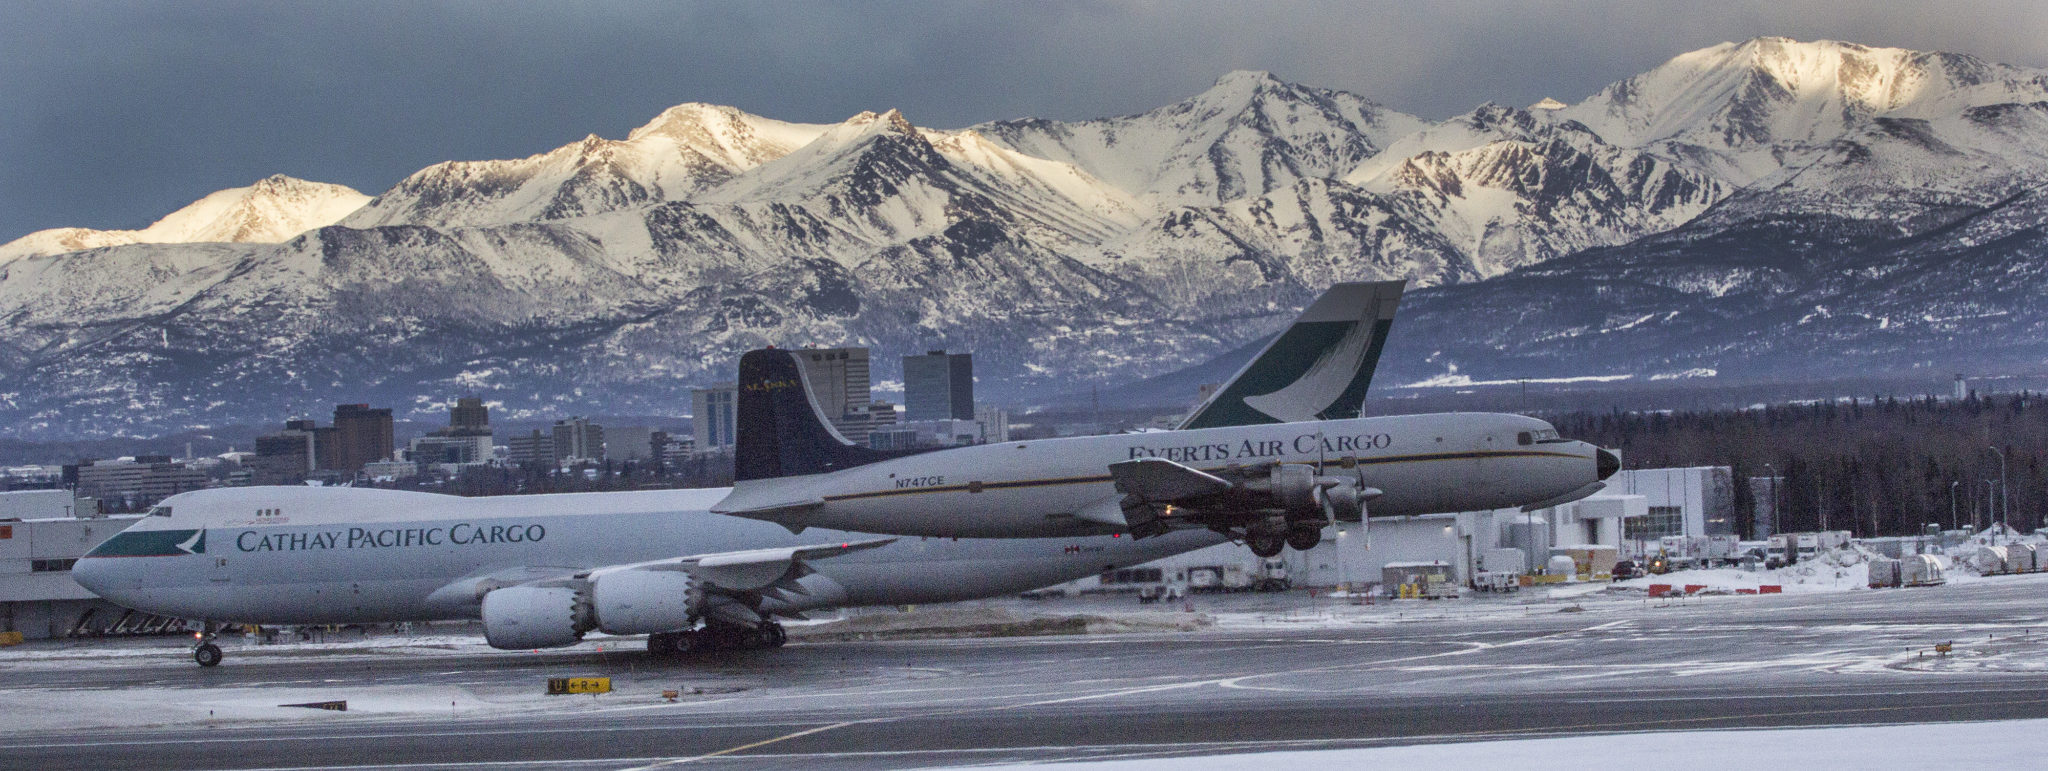 Aircraft photographed at Ted Stevens Anchorage International Airport